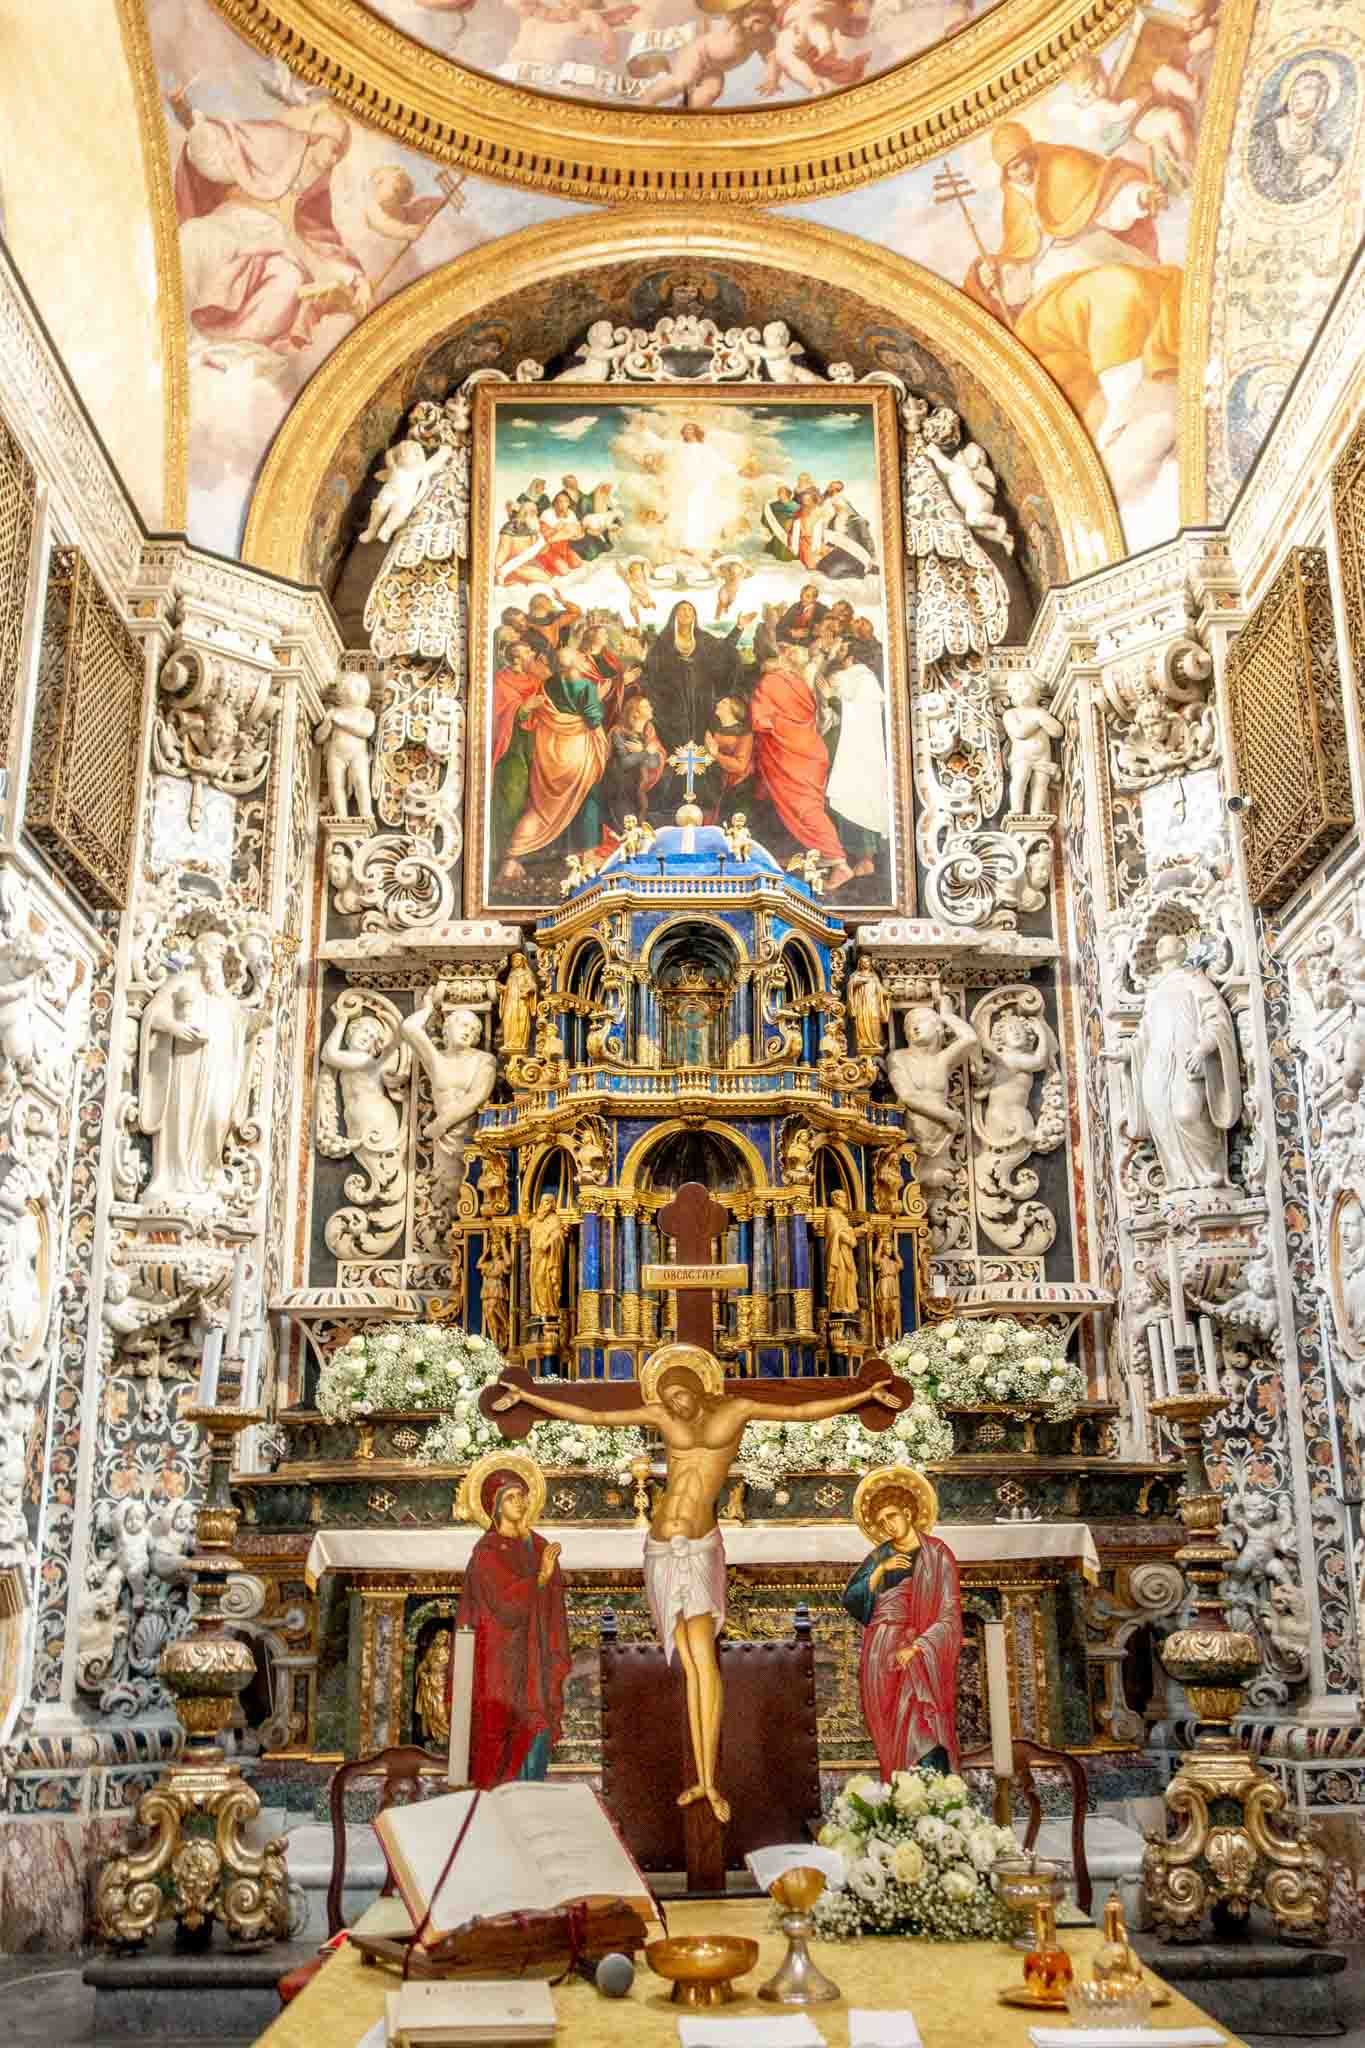 The elaborate carved marble altar at Martorana church with painting of Jesus